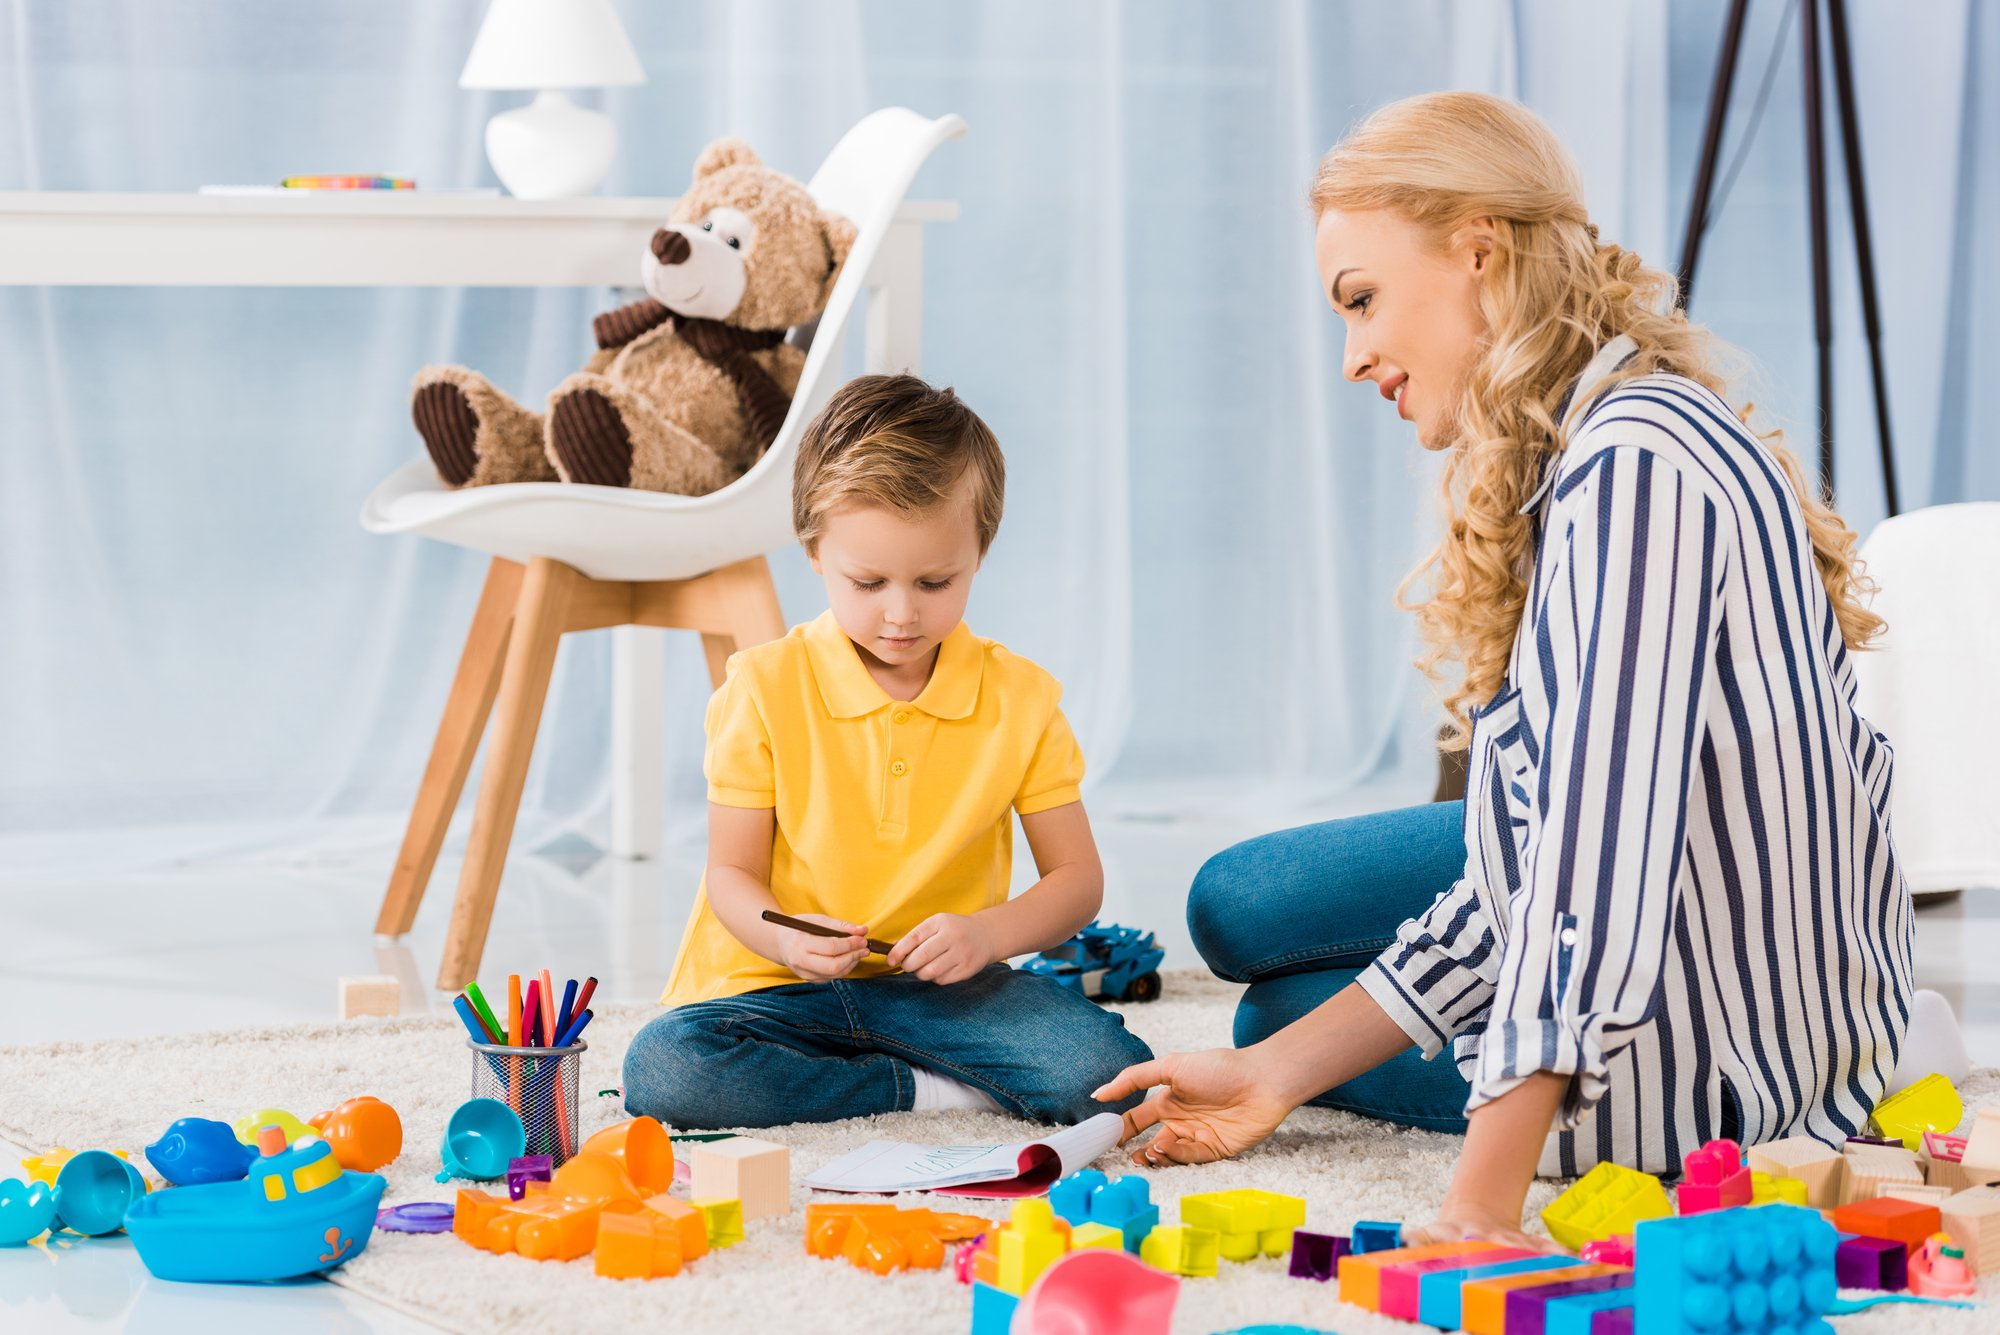 Bring along a trusted nanny or babysitter on your travels